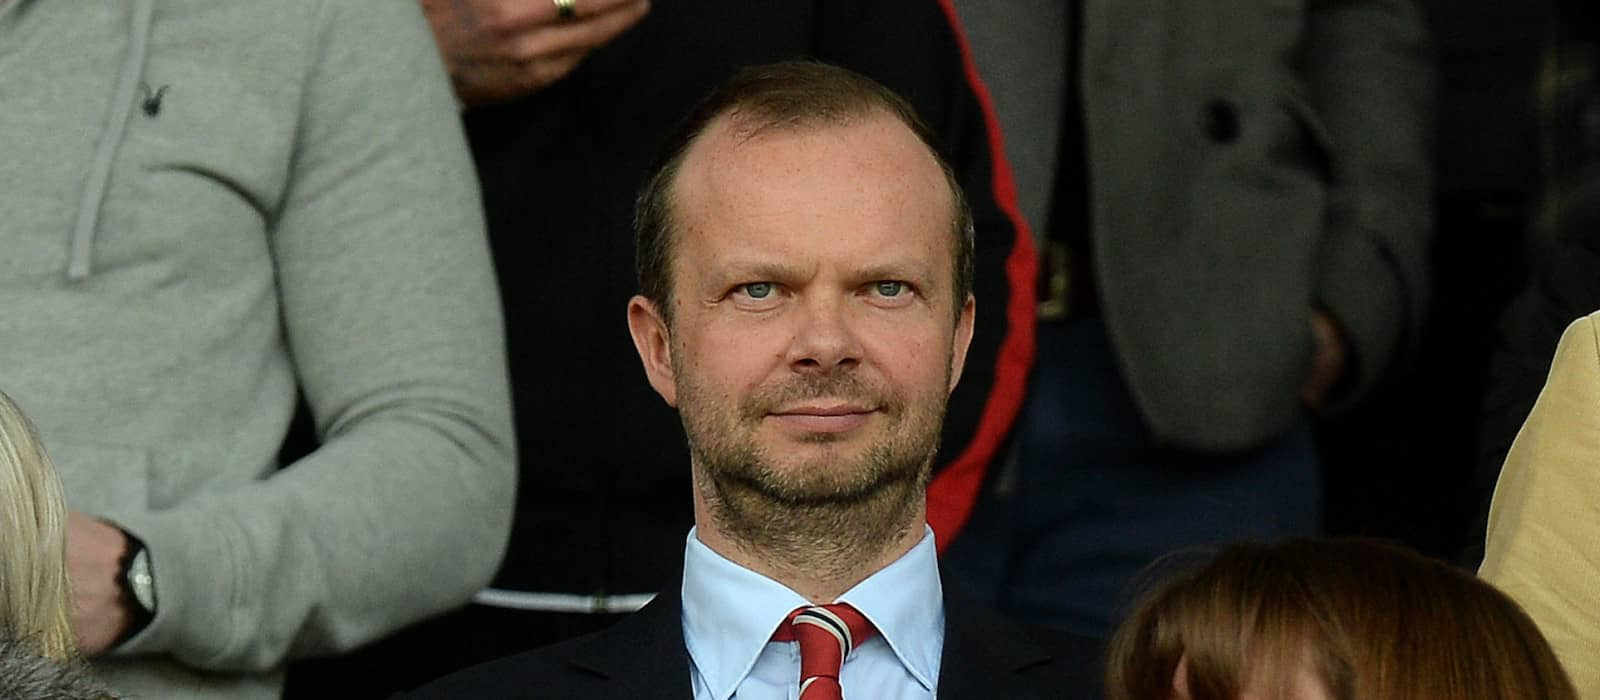 Ed Woodward supports Ole Gunnar Solskjaer but is it real?